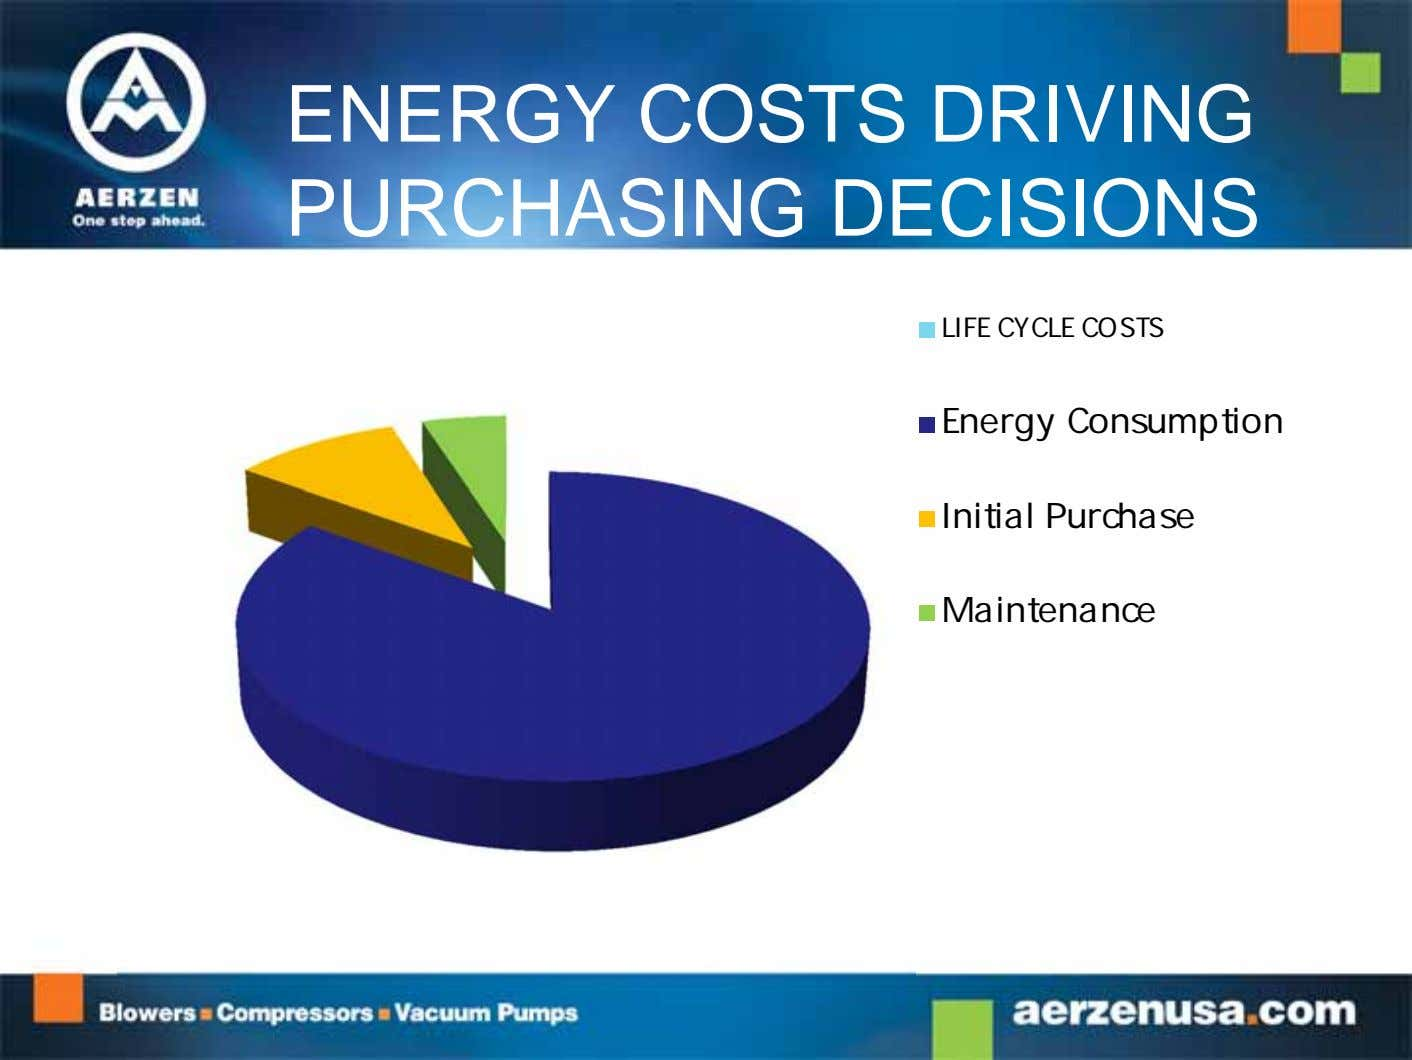 ENERGY COSTS DRIVING PURCHASING DECISIONS LIFE CYCLE COSTS Energy Consumption Initial Purchase Maintenance